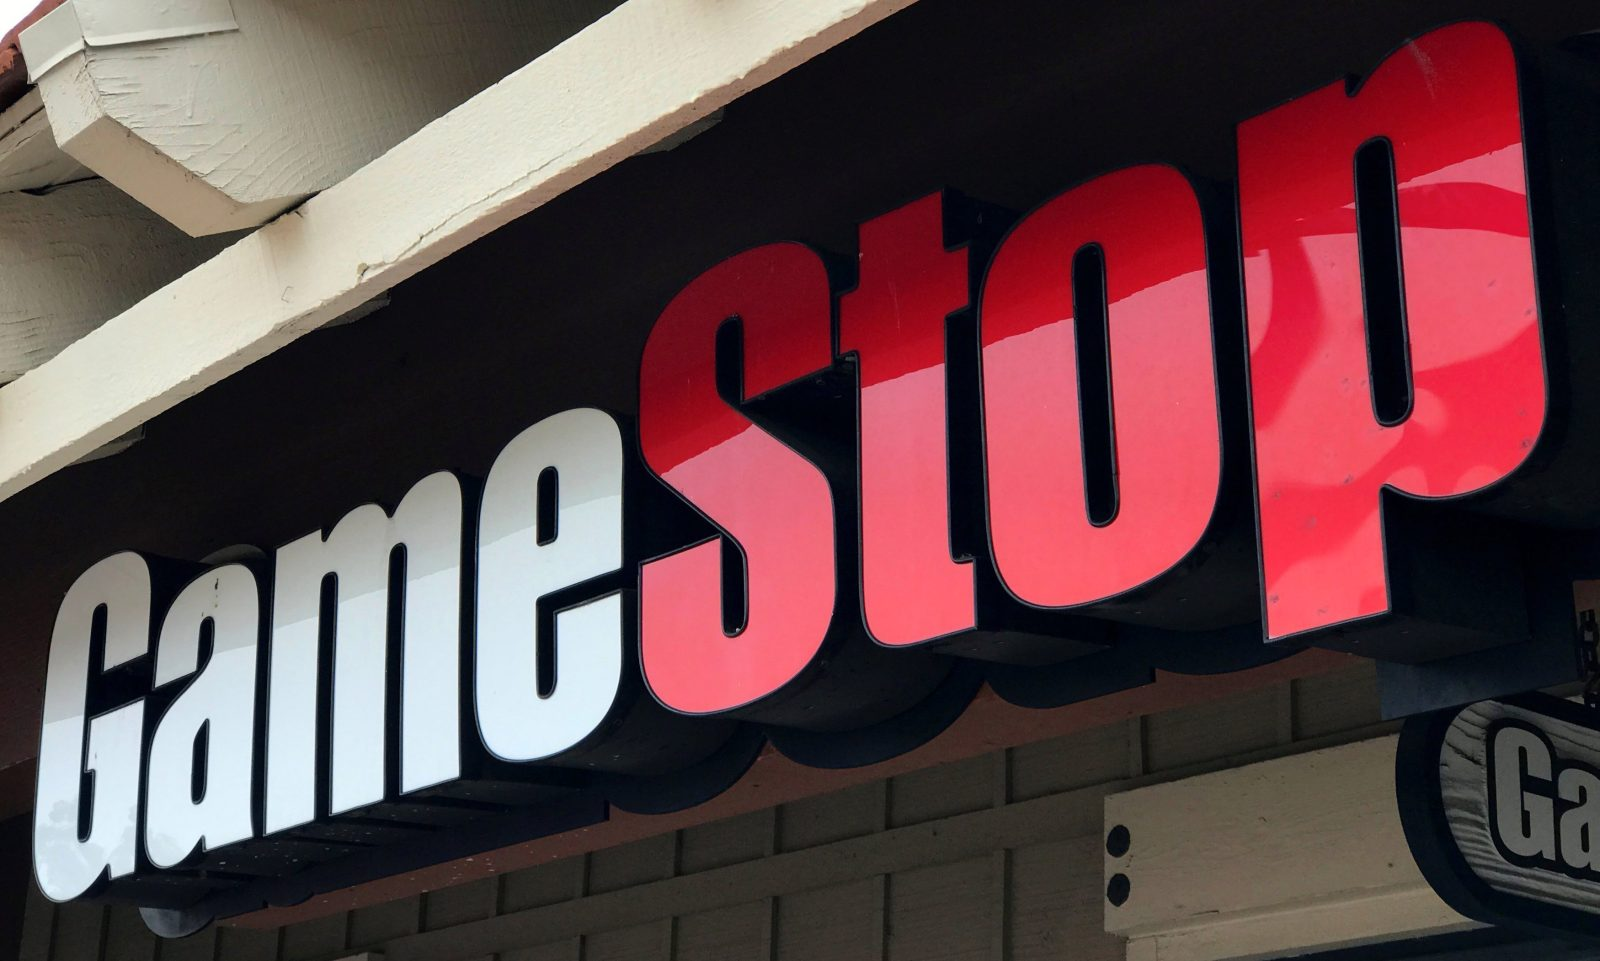 Rare gift card deals up to 15% off: GameStop, J. Crew, Staples, Airbnb, Cabela's, more